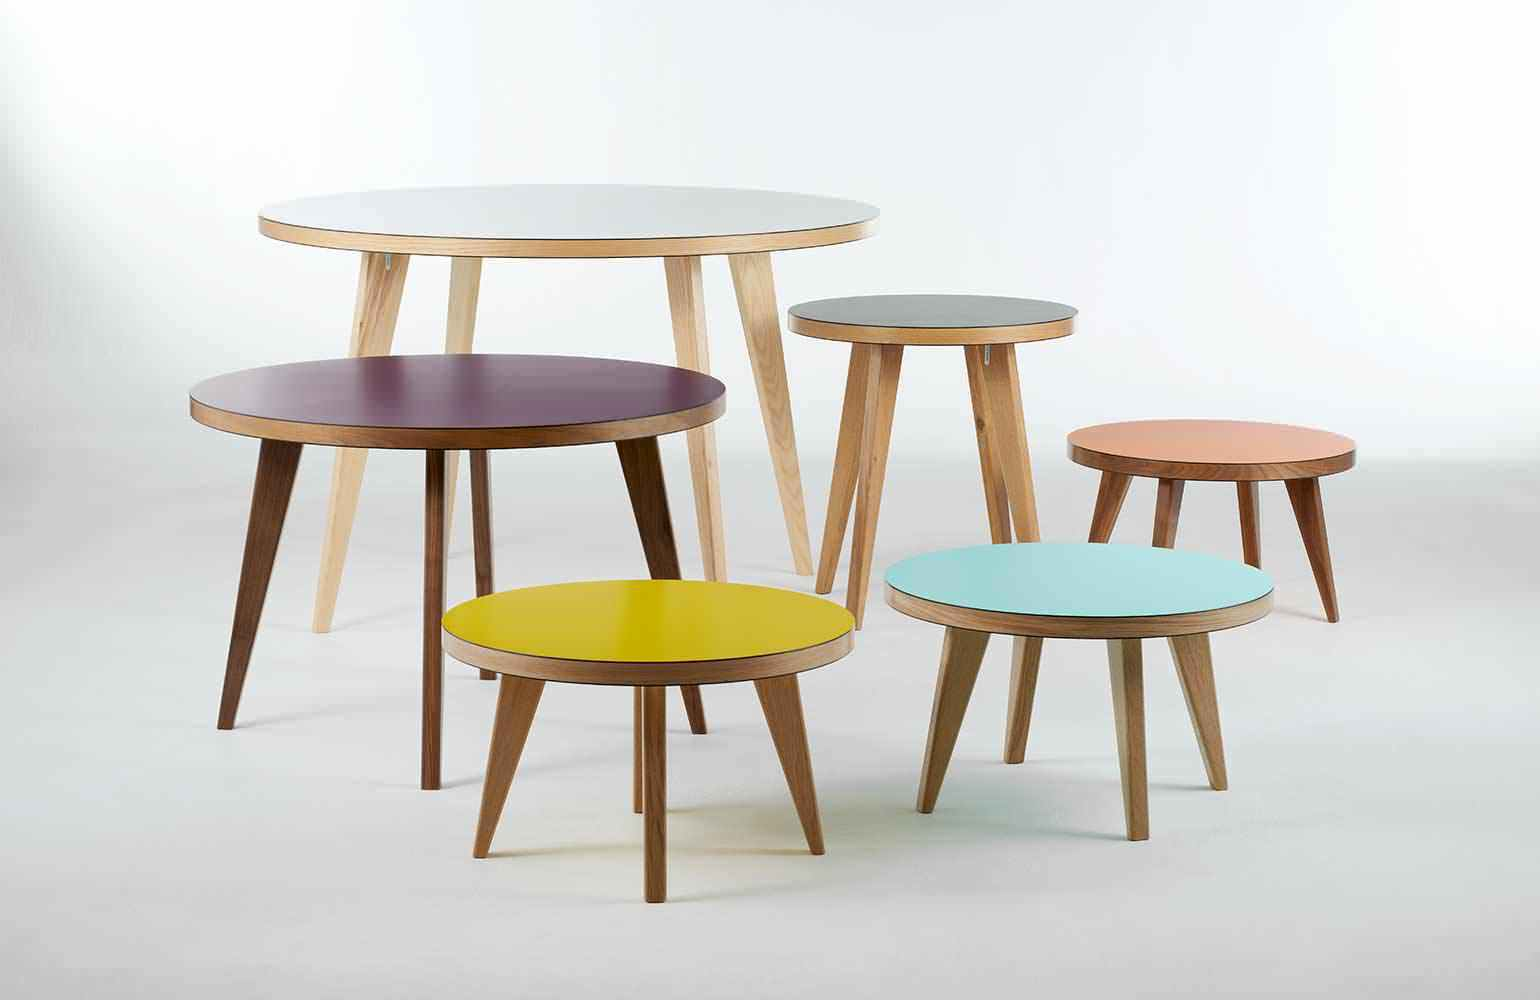 contemporary table solid wood round jura james buleigh - Table D Appoint Ronde